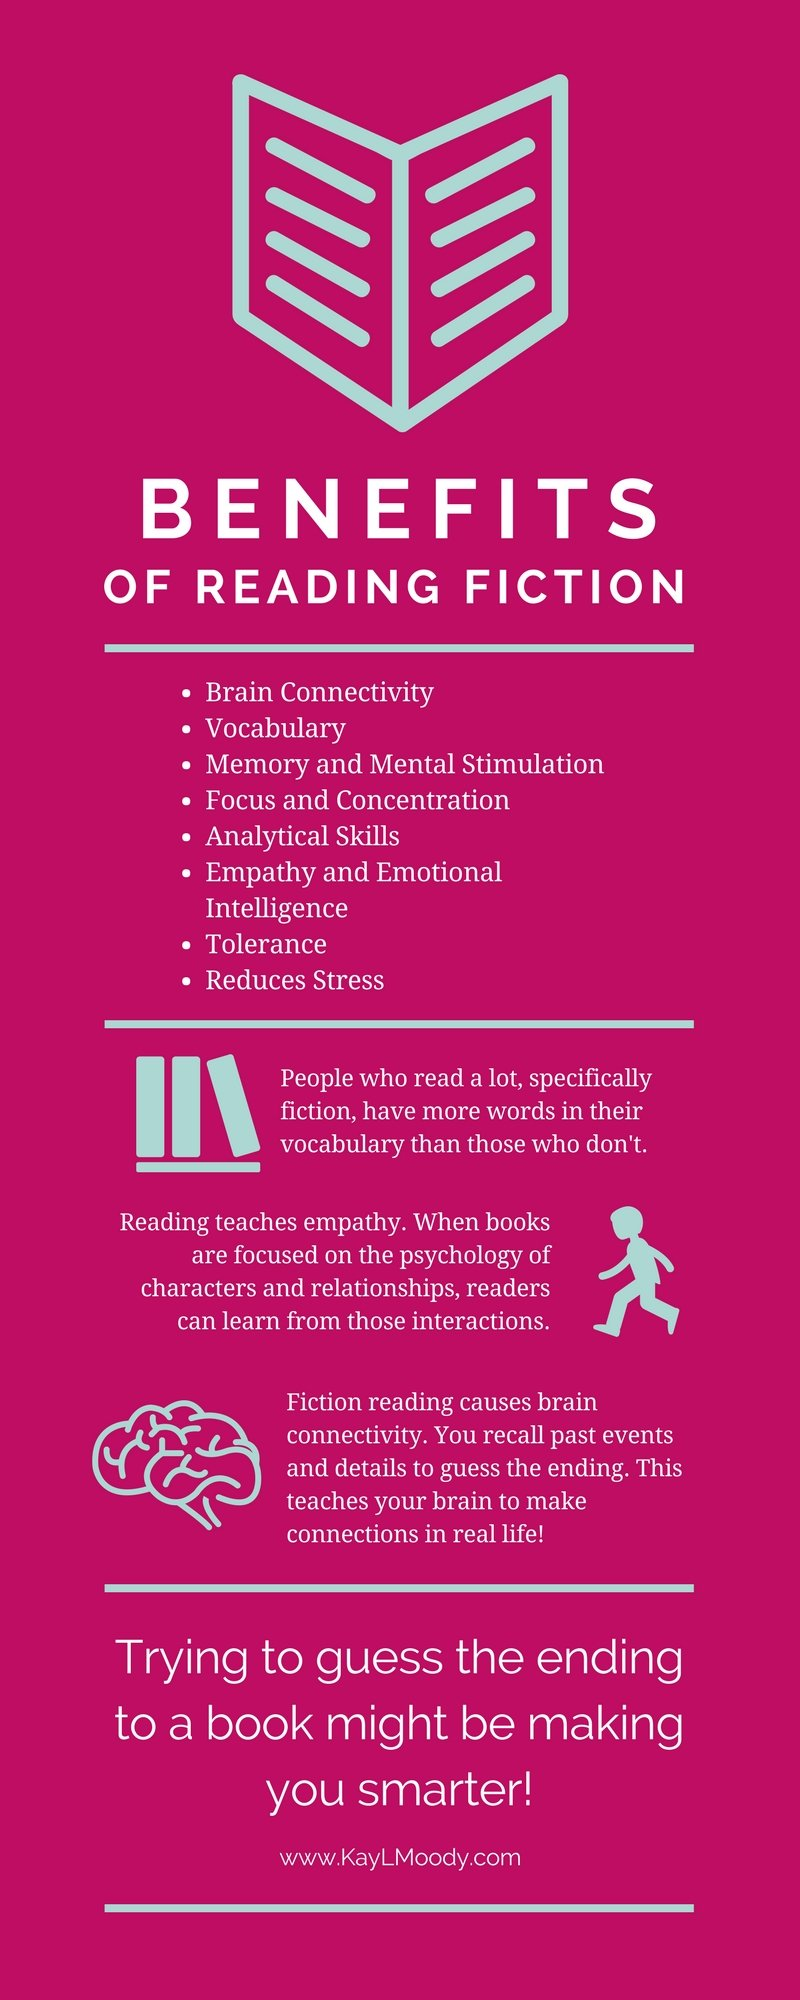 Benefits of Reading Fiction Infographic